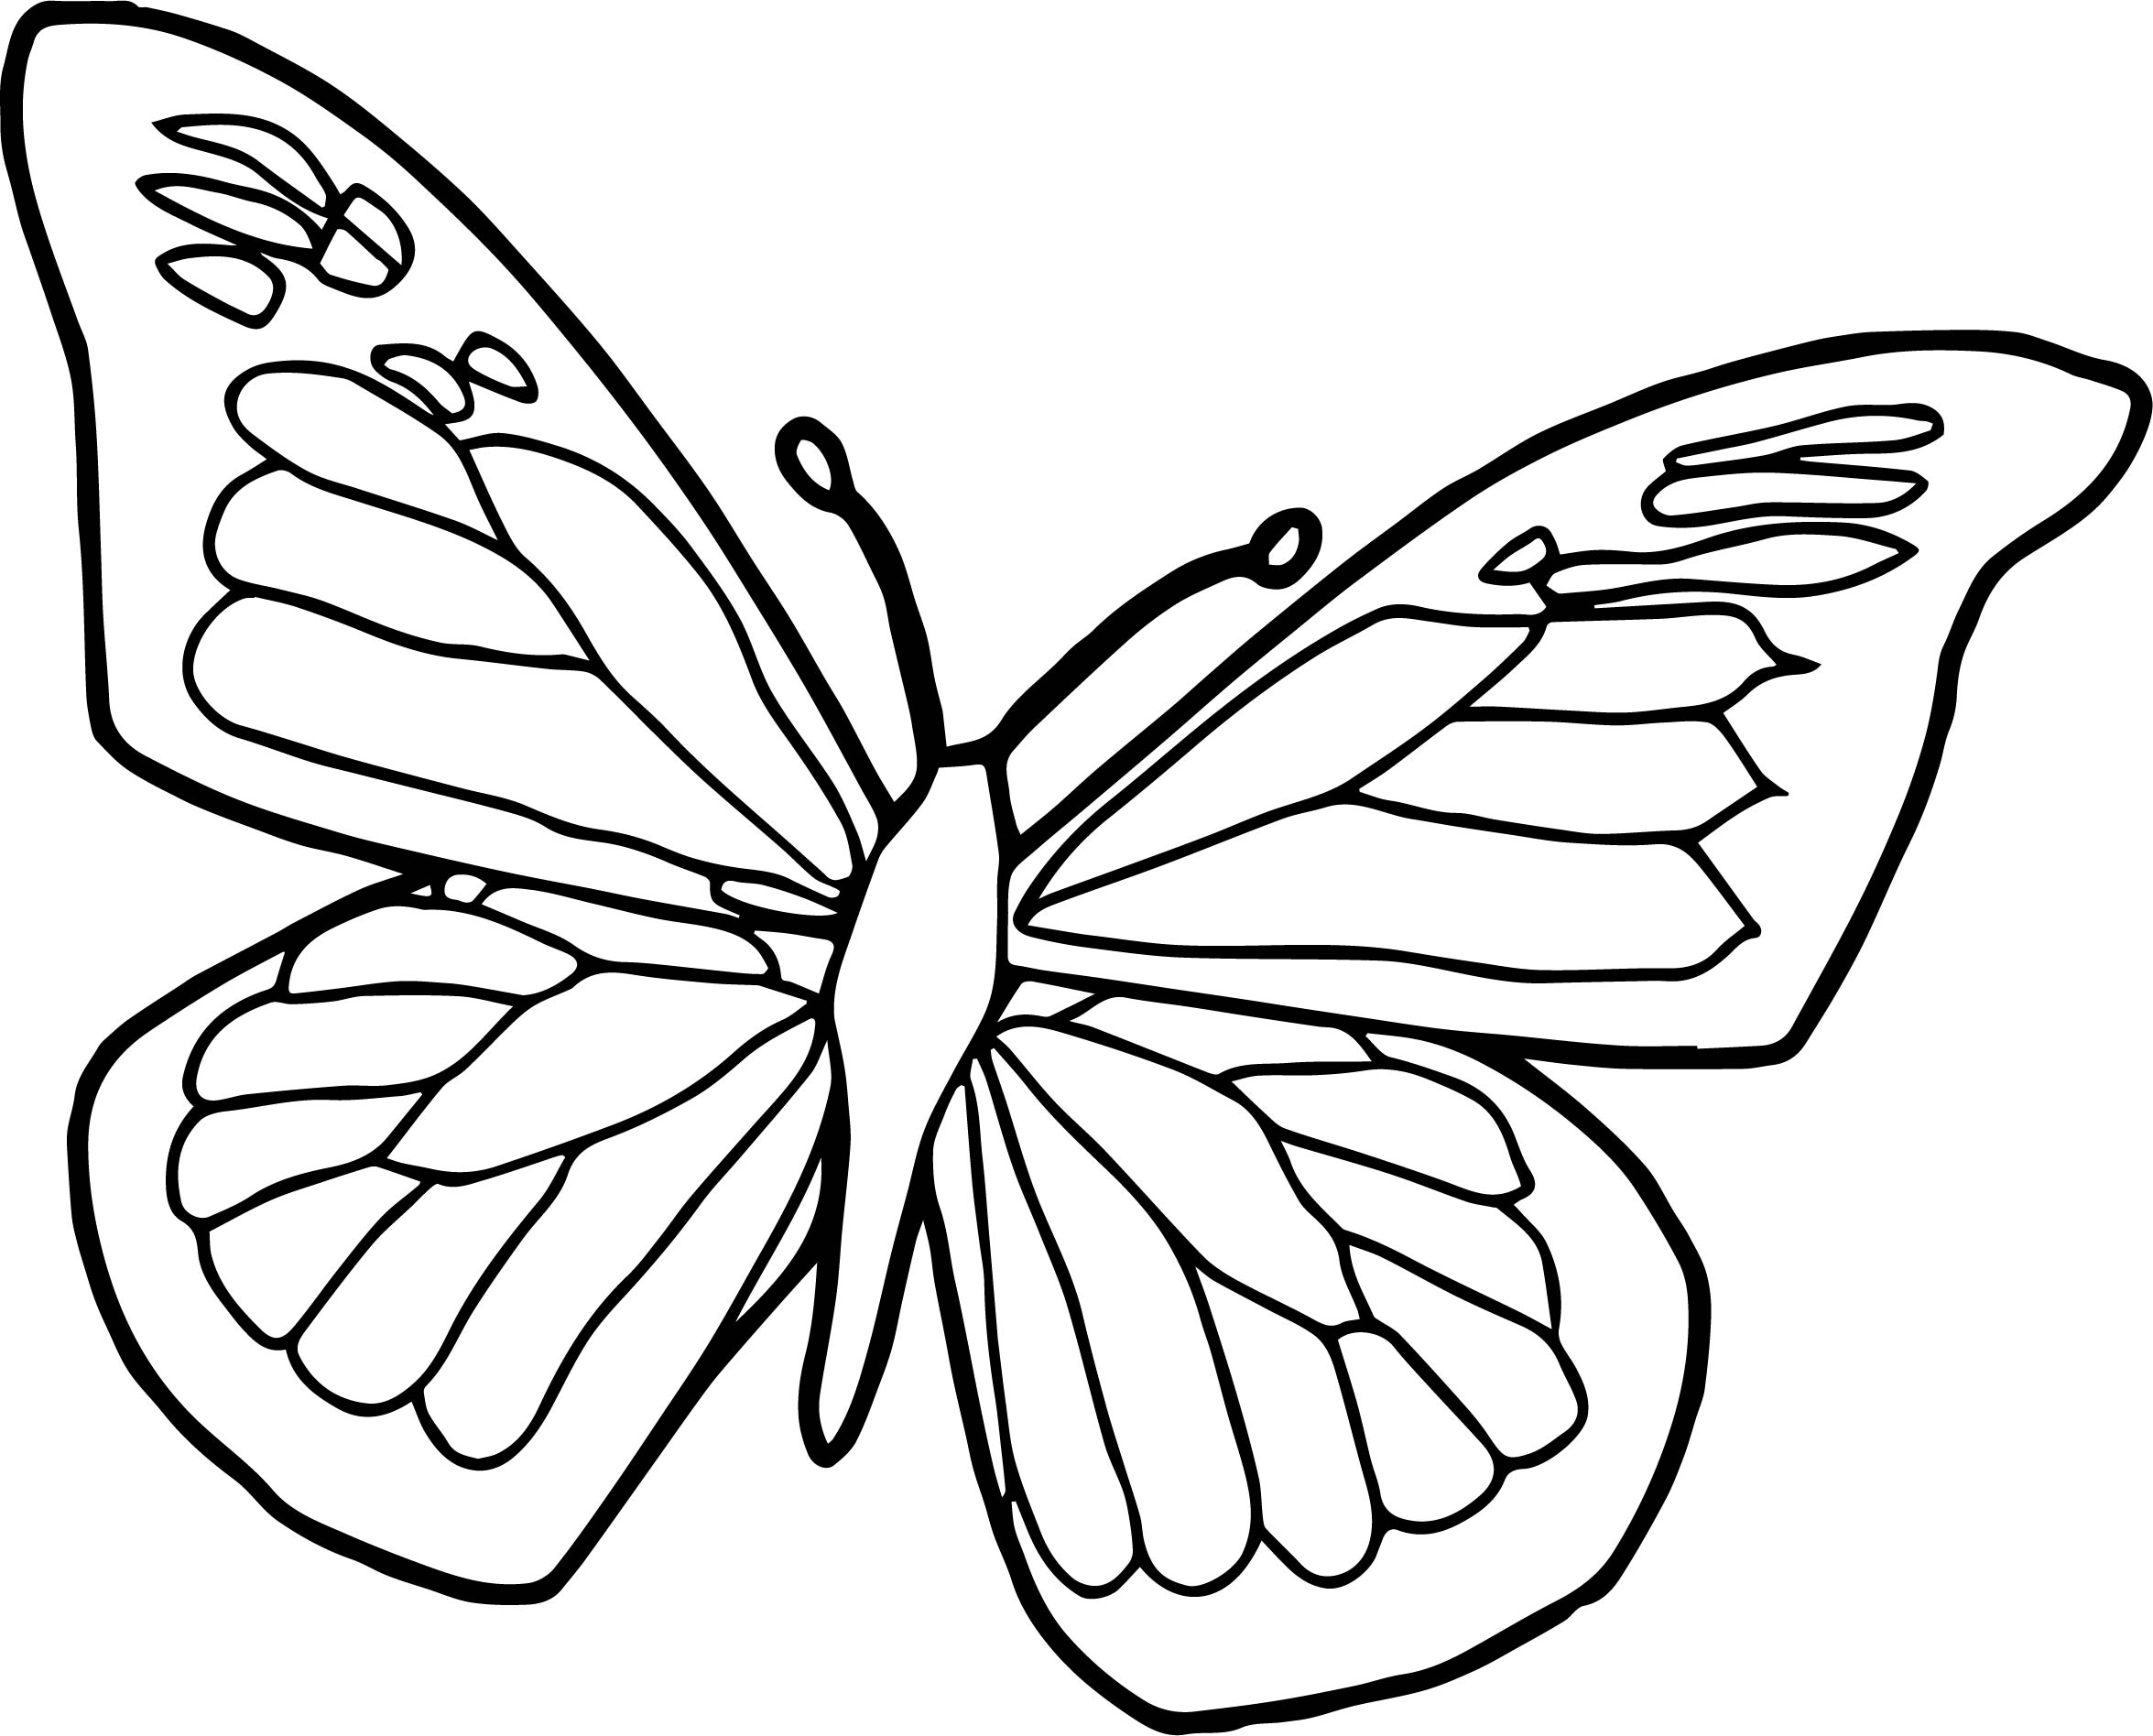 butterfly clipart to color butterfly coloring pages free download on clipartmag color clipart to butterfly